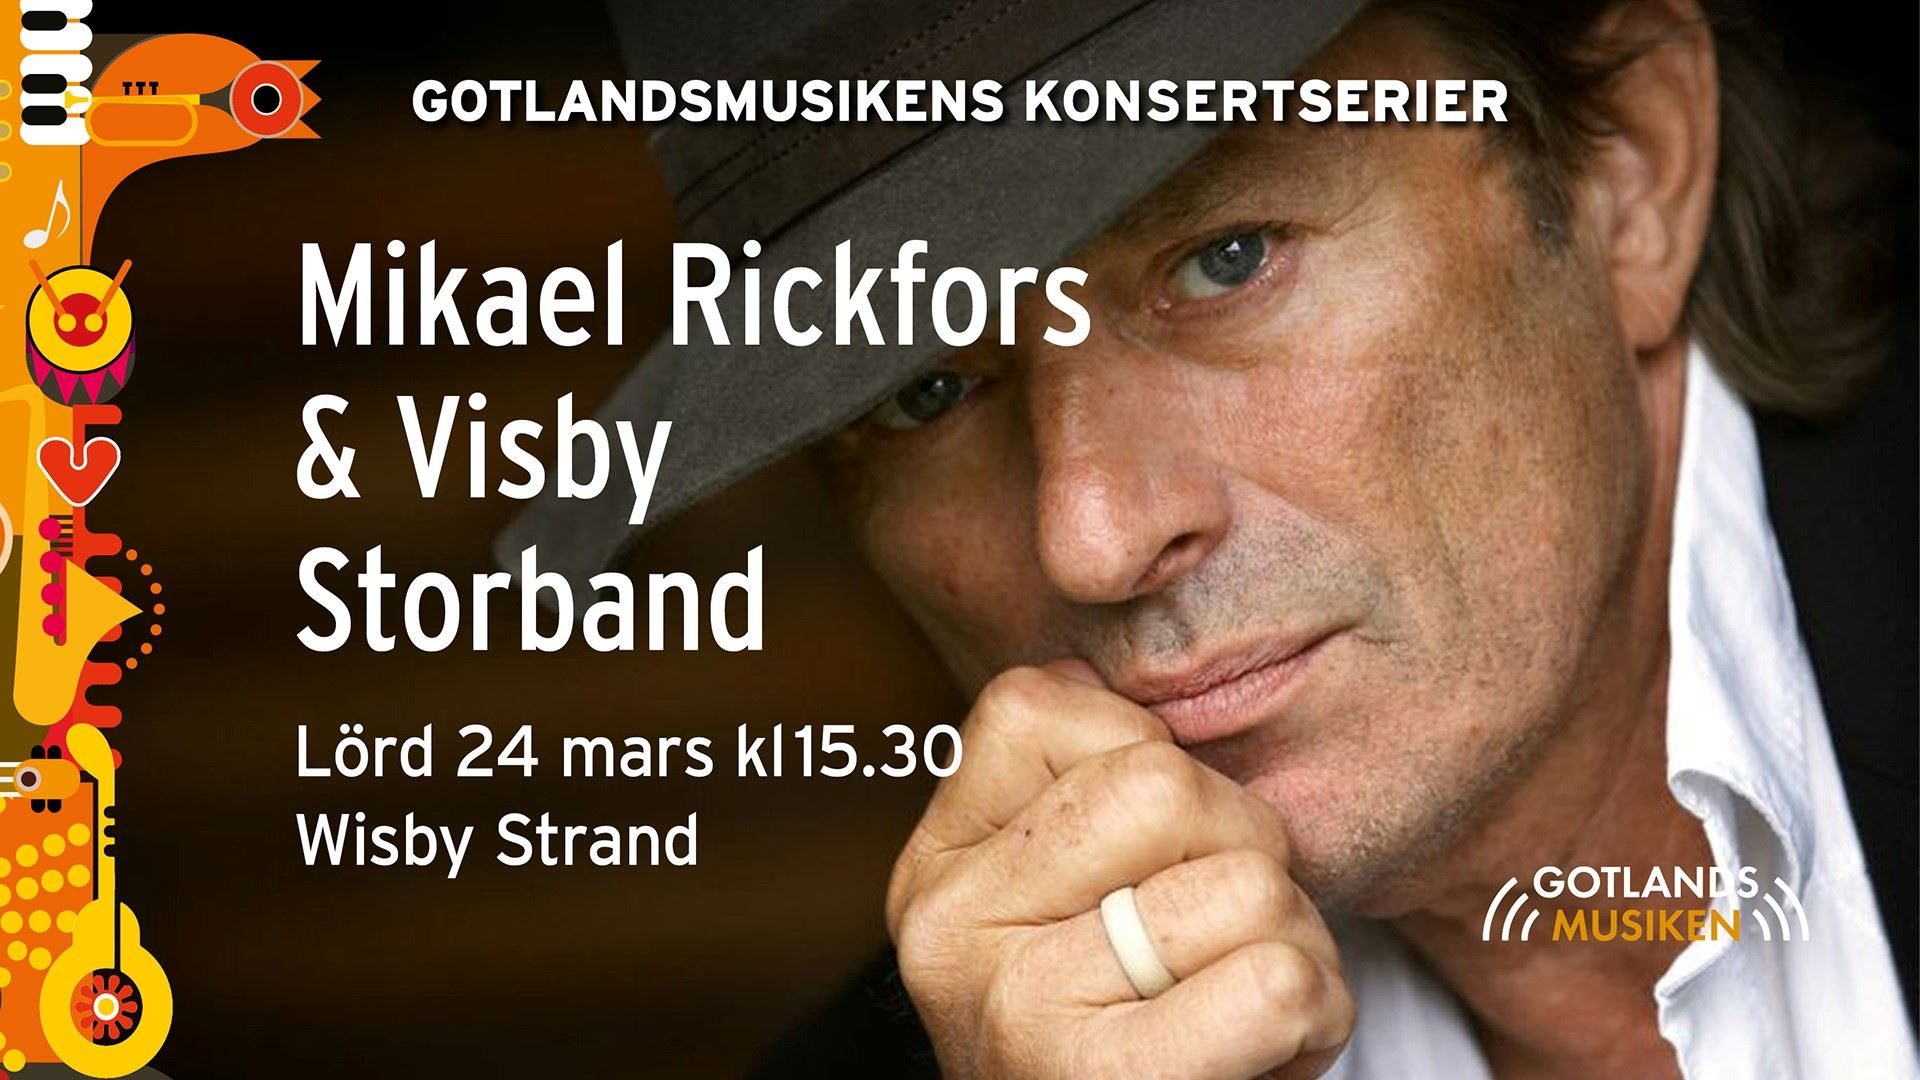 Mikael Rickfors & Visby Storband